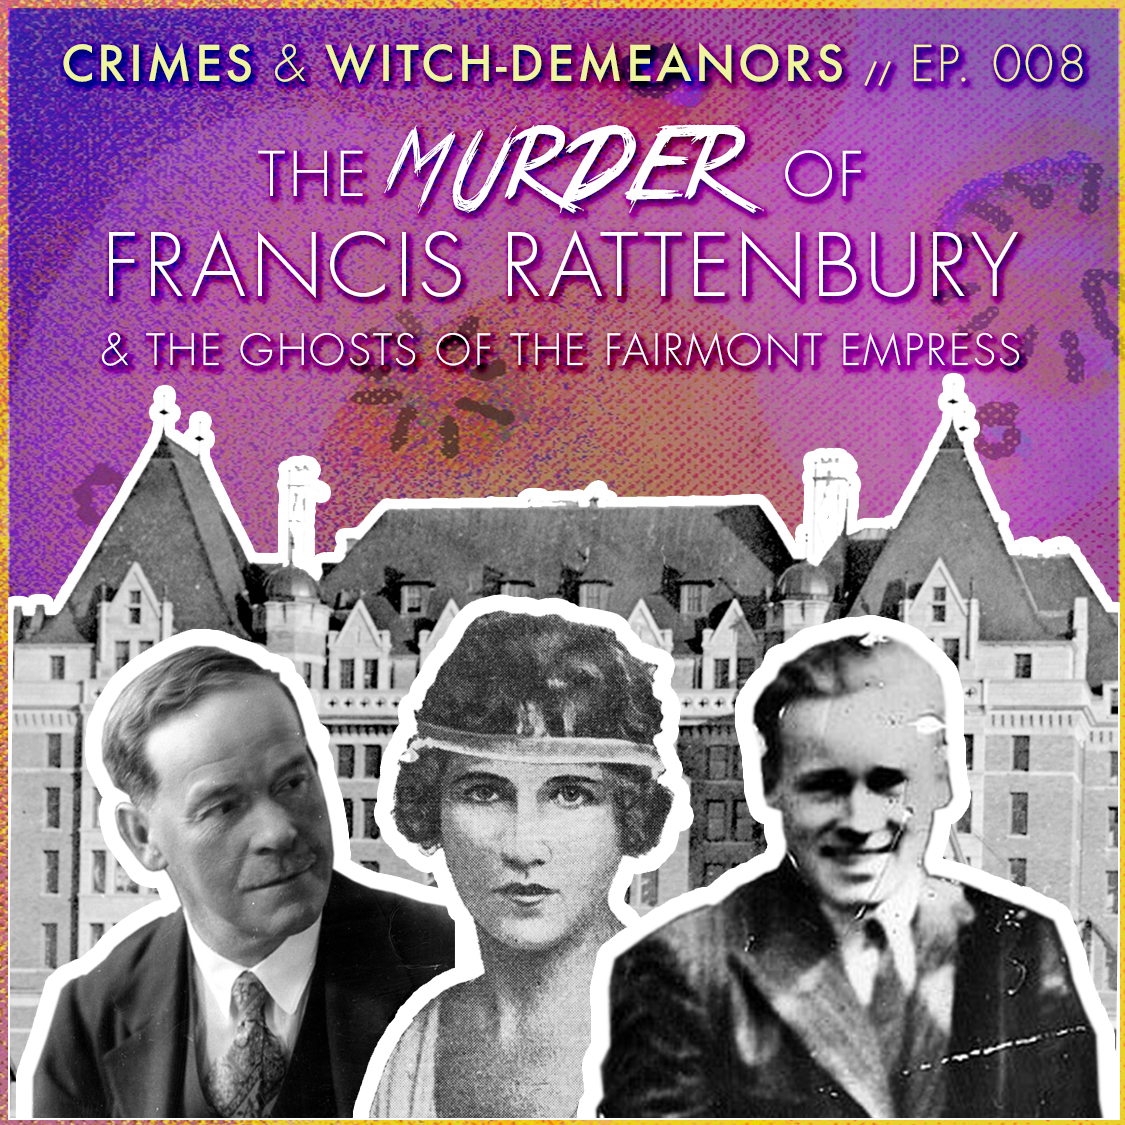 The Murder of Francis Rattenbury & The Ghosts of the Fairmont Empress